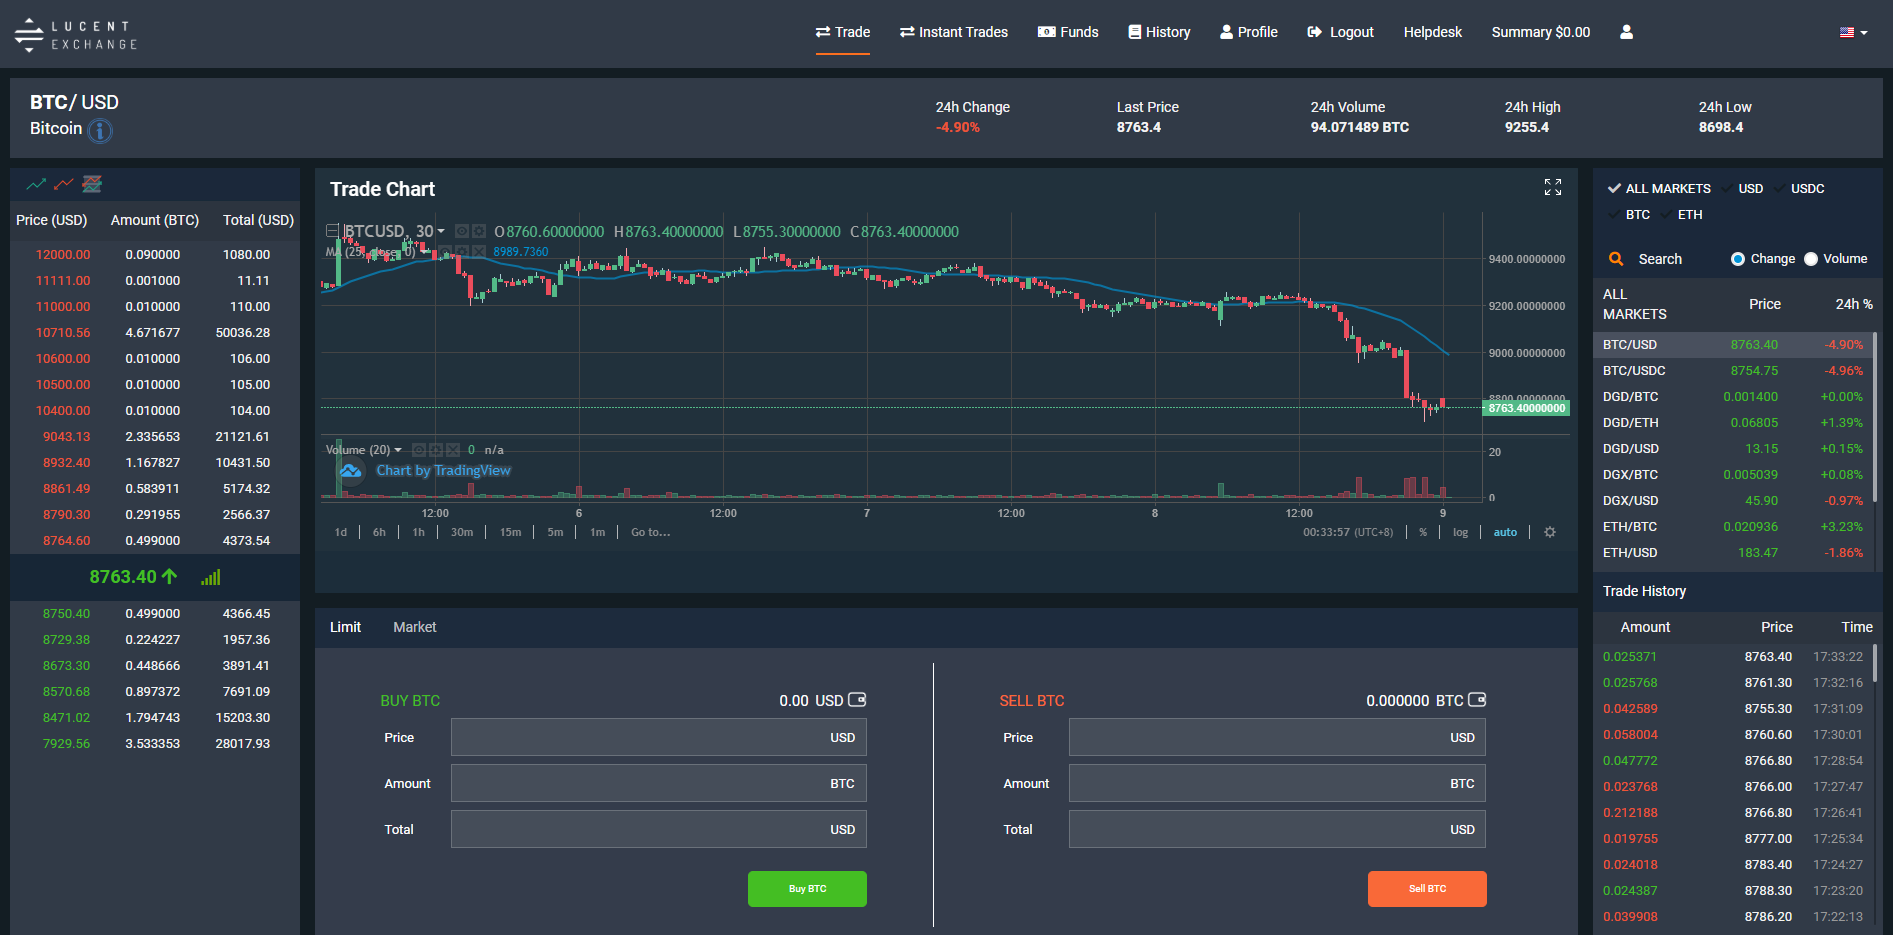 Lucent Exchange Trading View